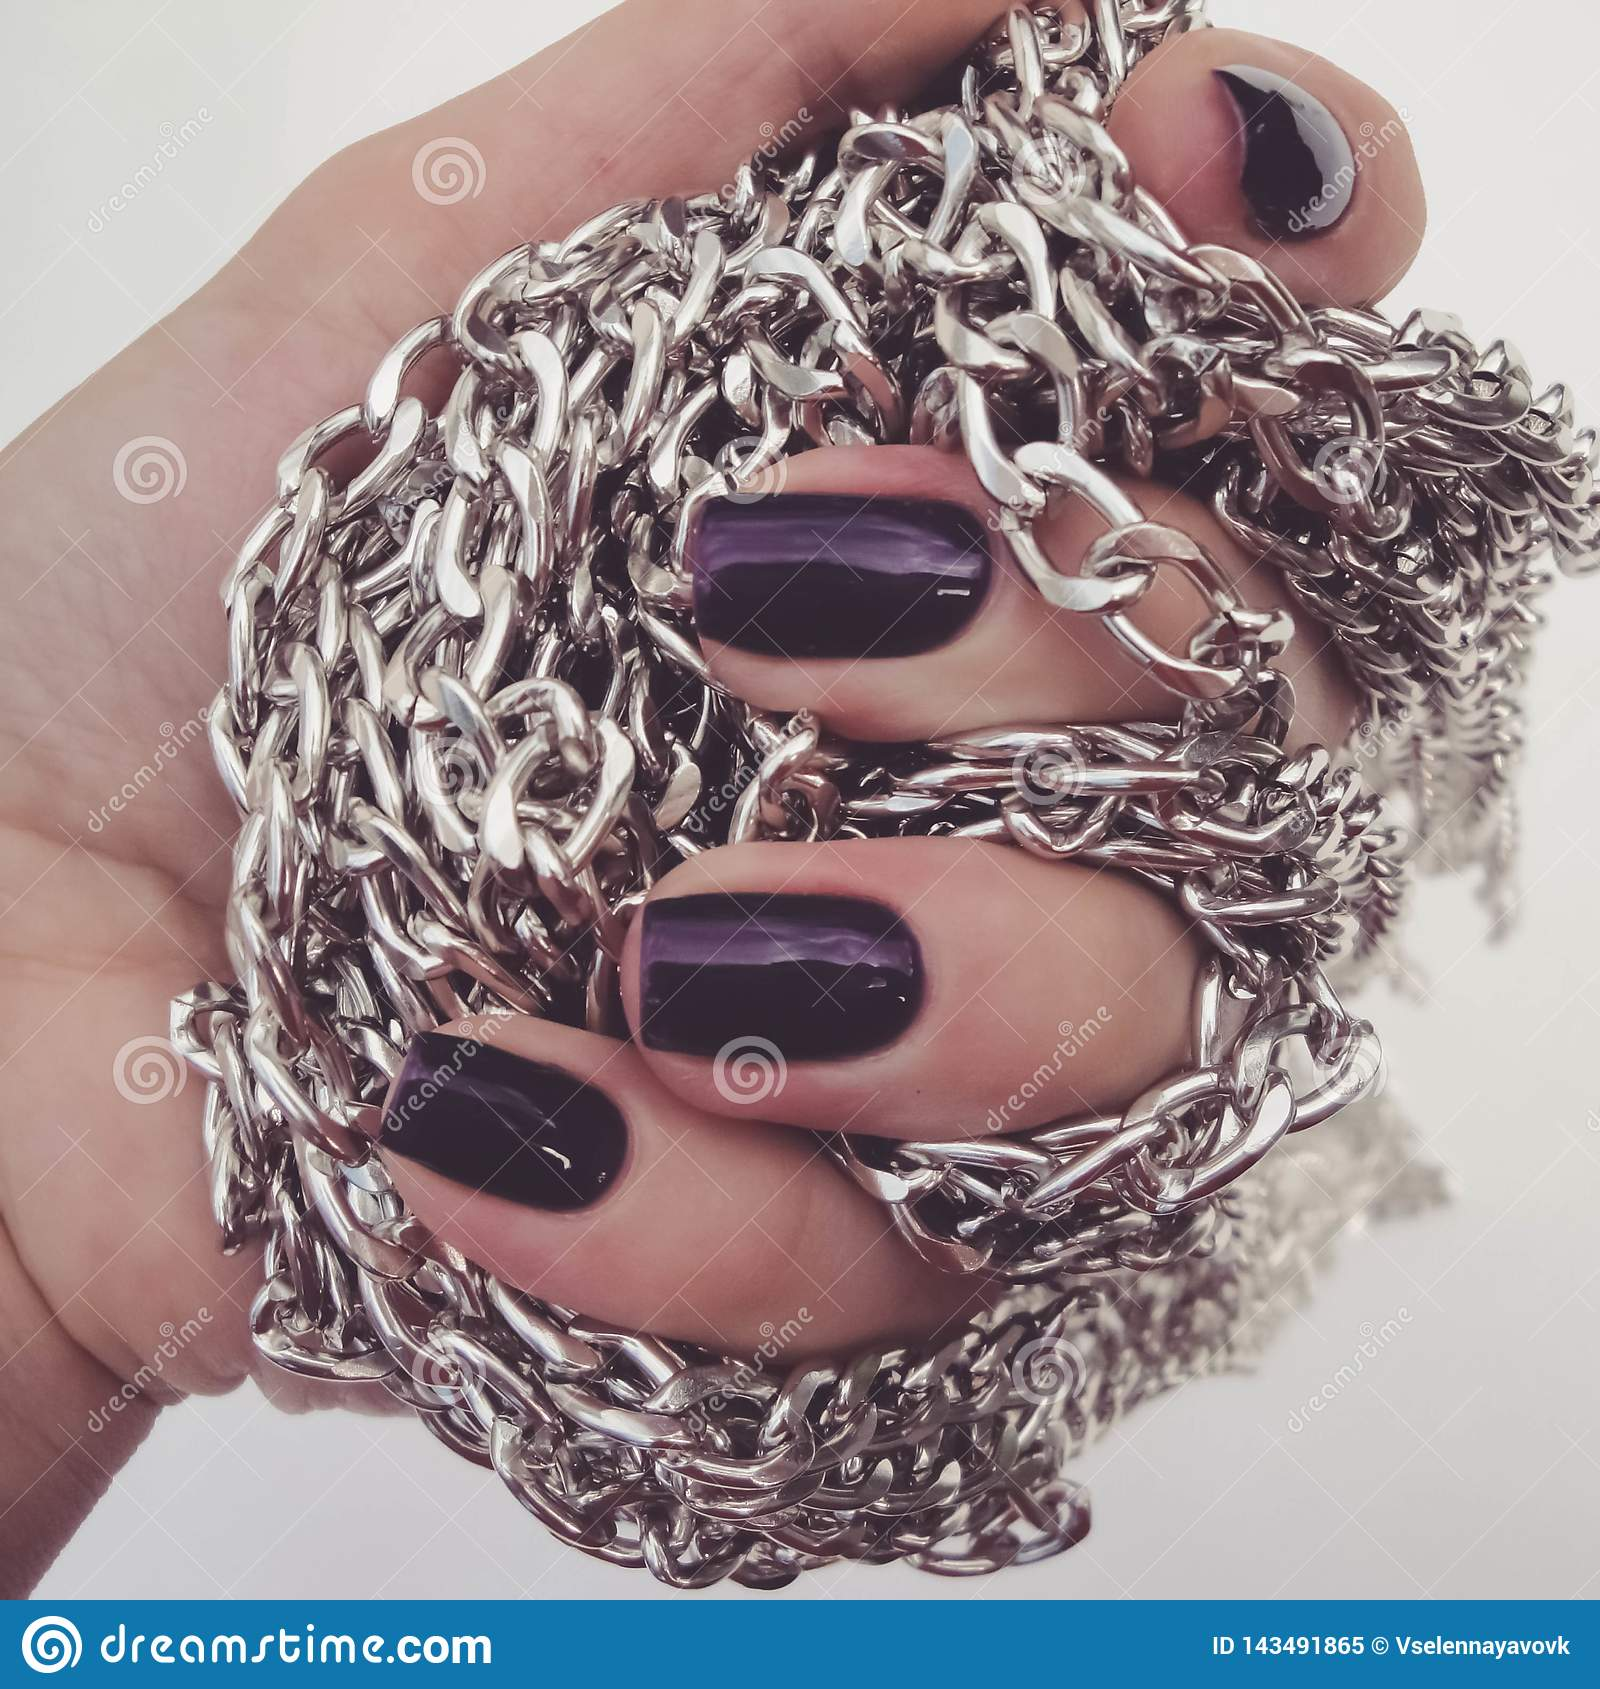 Beautiful red nails and chain close up.Beautiful, well-groomed nails with purple nail polish and chain in hand